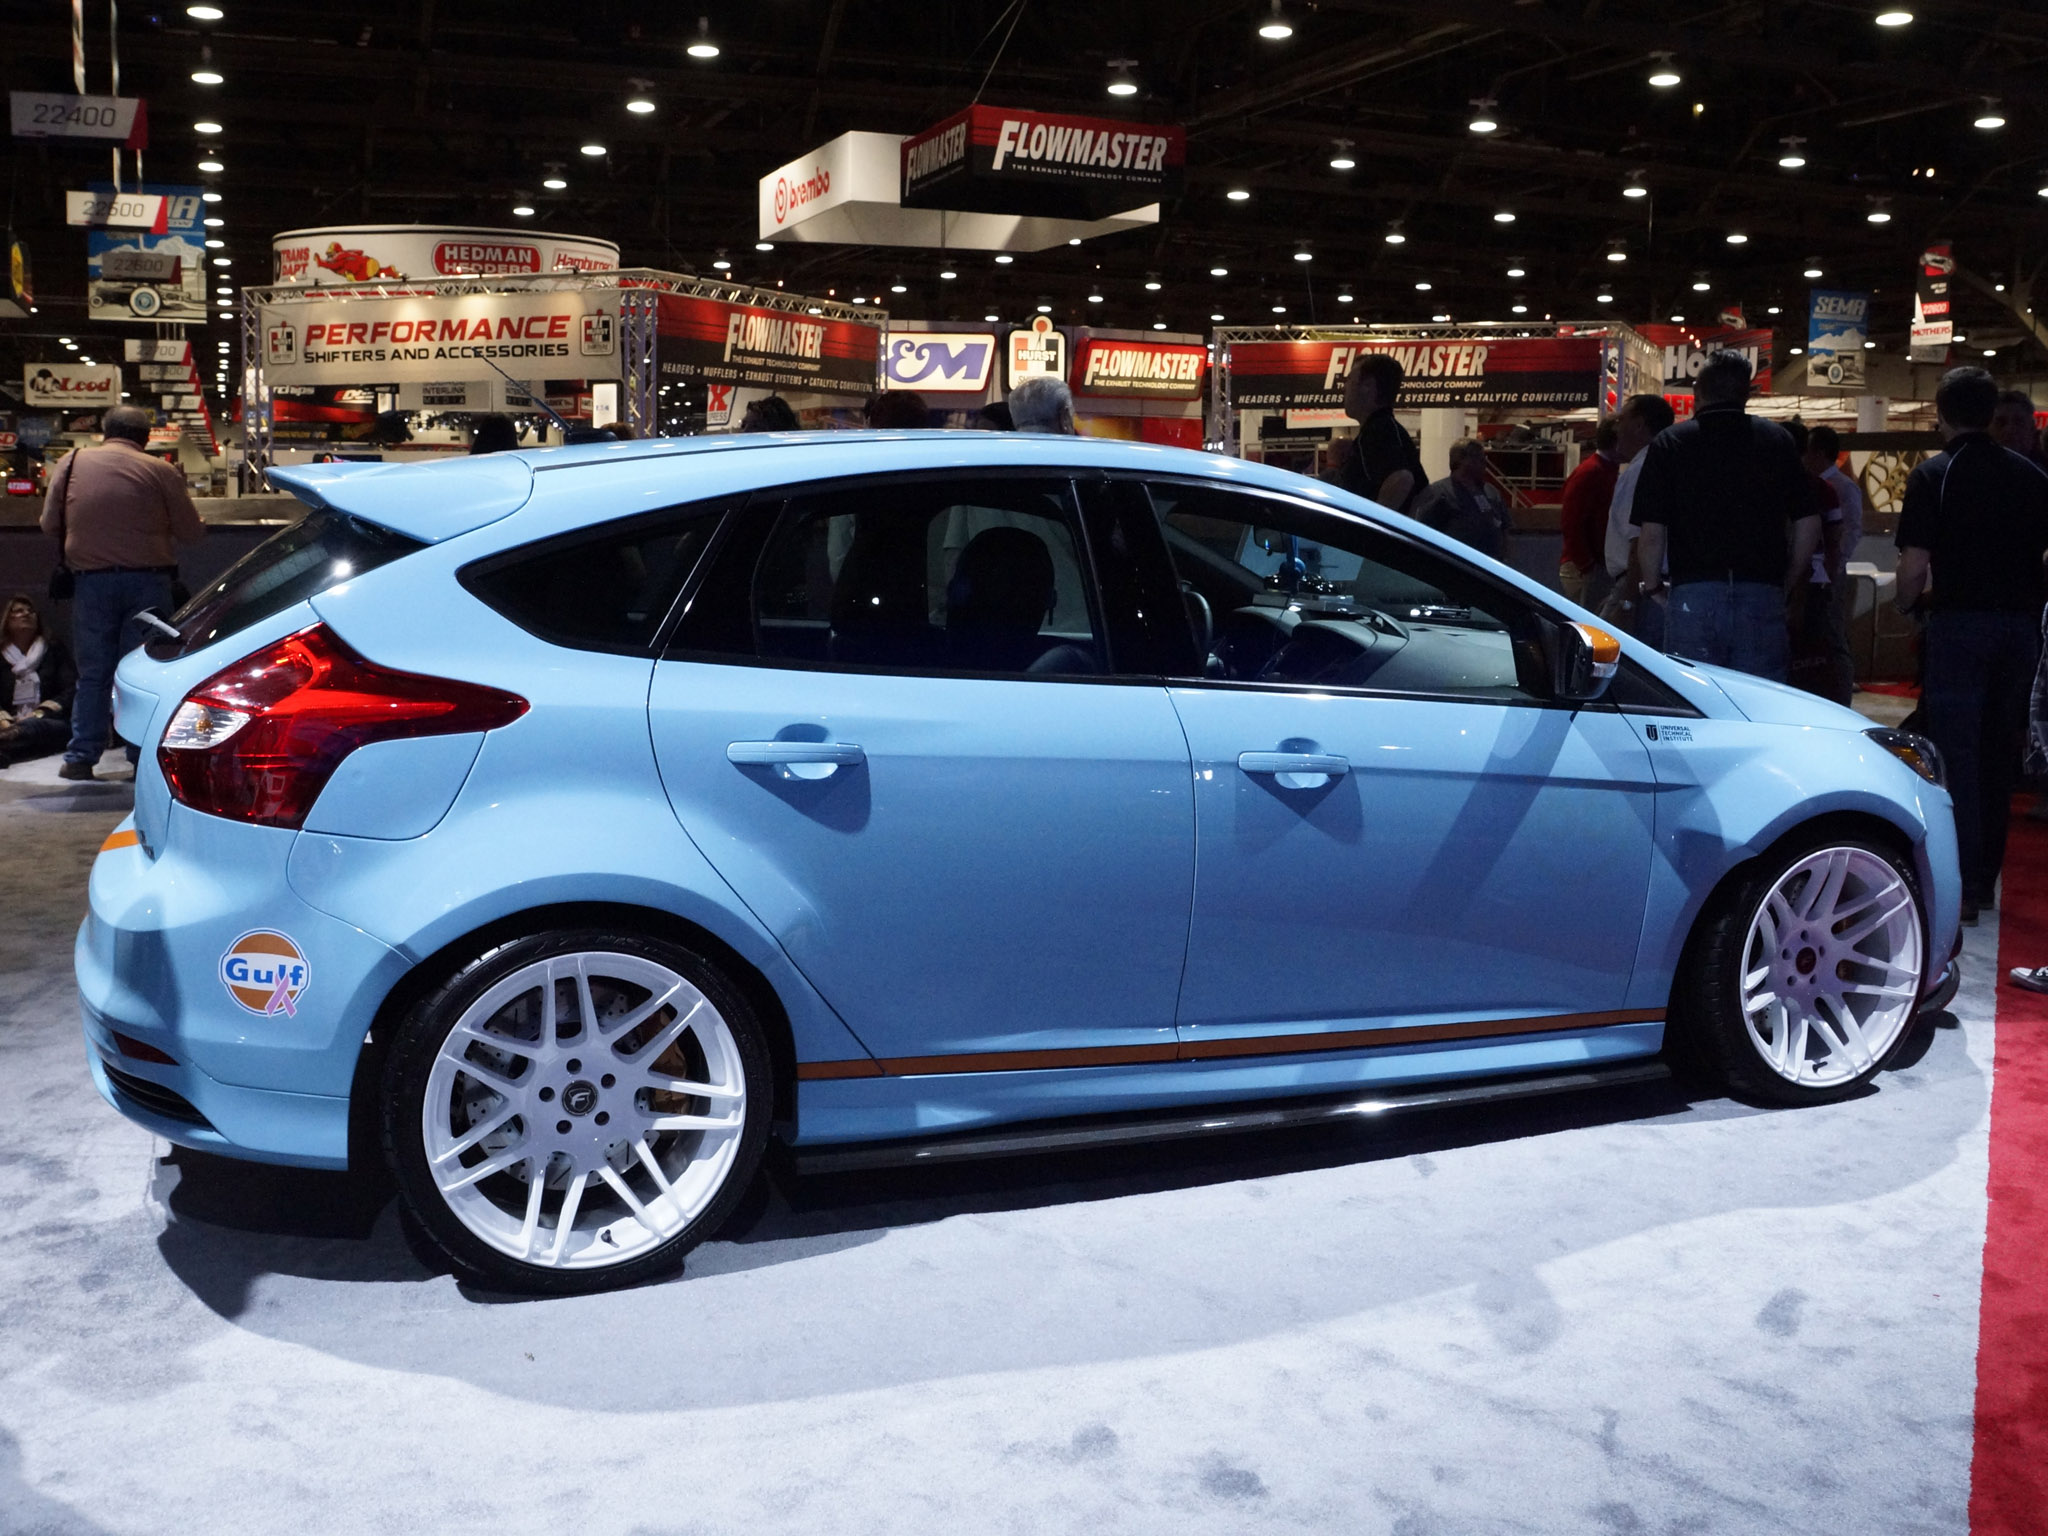 2013 ford focus st gulf racing race tuning s t r wallpaper. Black Bedroom Furniture Sets. Home Design Ideas